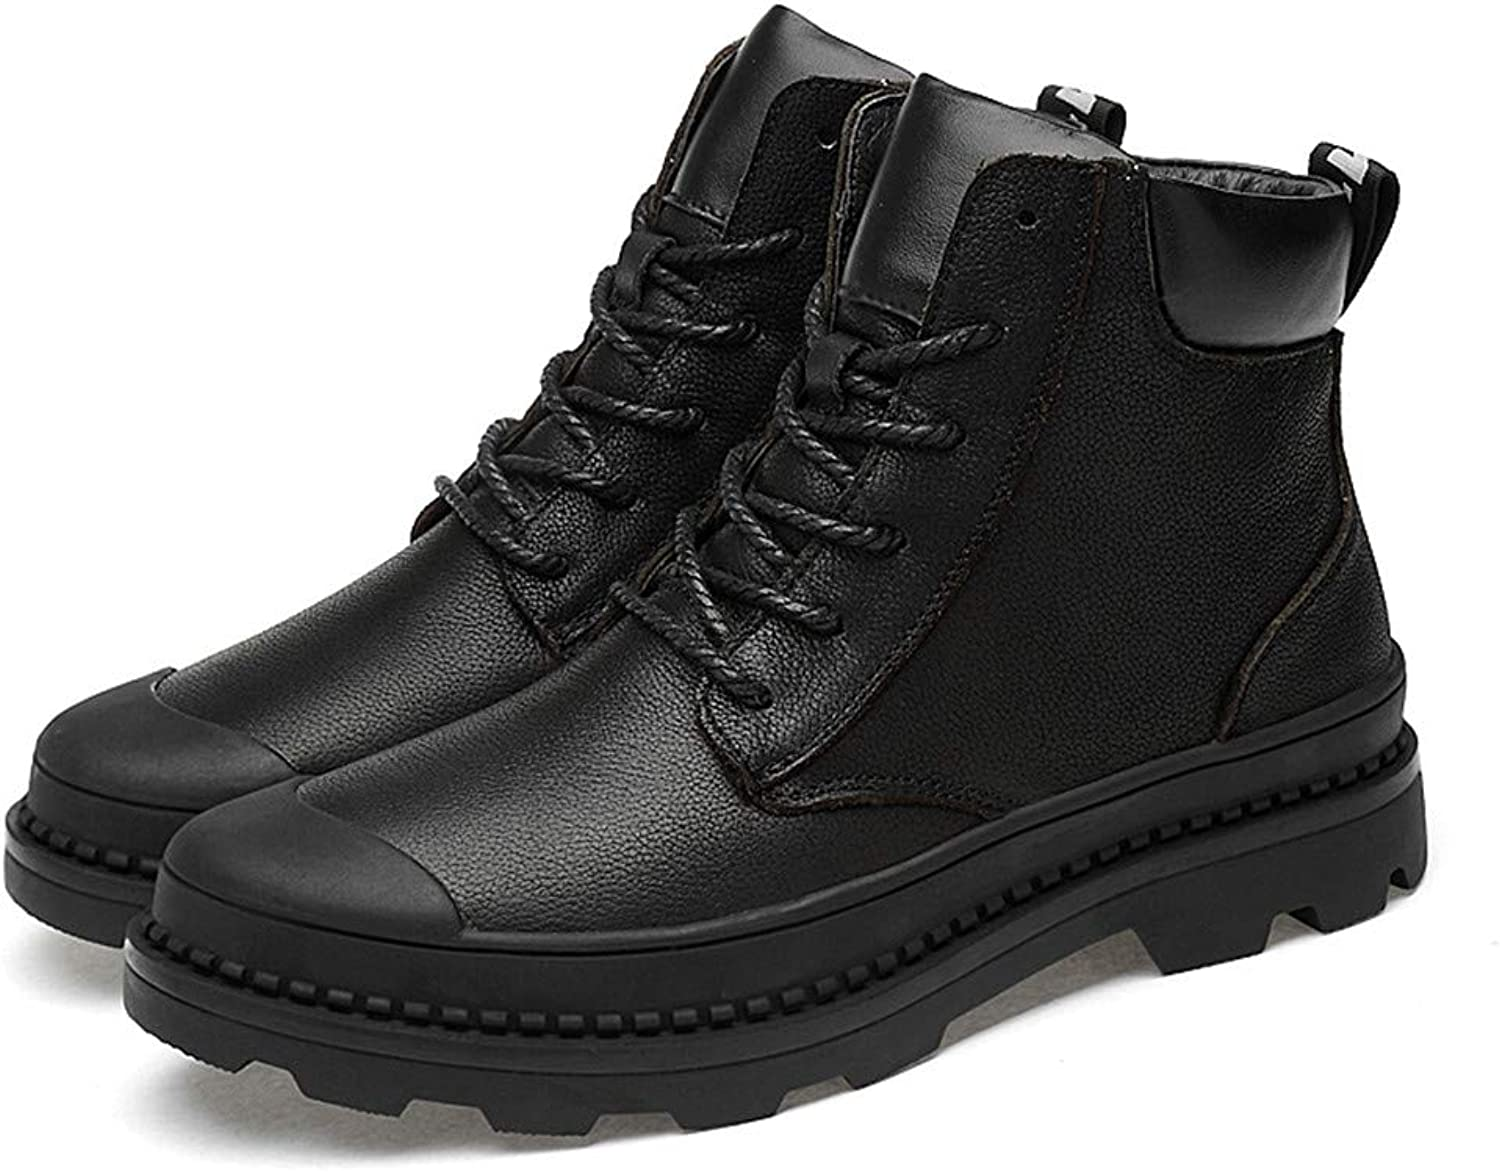 Dig dog bone Men's Fashion Ankle Boots Casual top Lacing Waterproof Outdoor Martin Boots